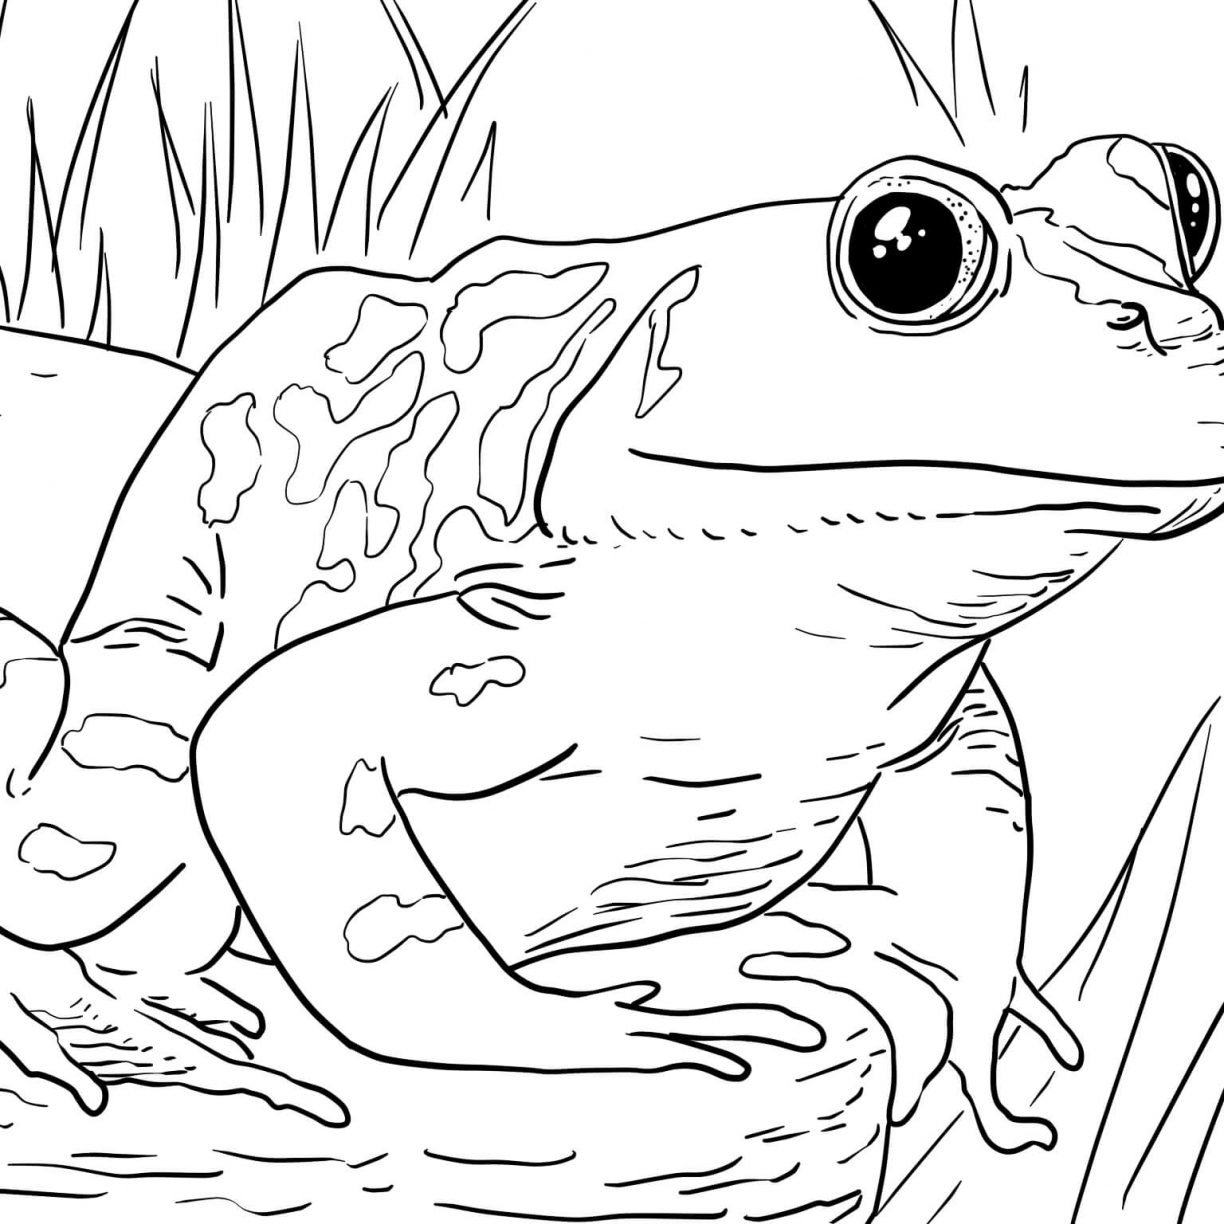 1224x1224 Kermit The Frog Coloring Pages Head Realistic And Page Cartoons